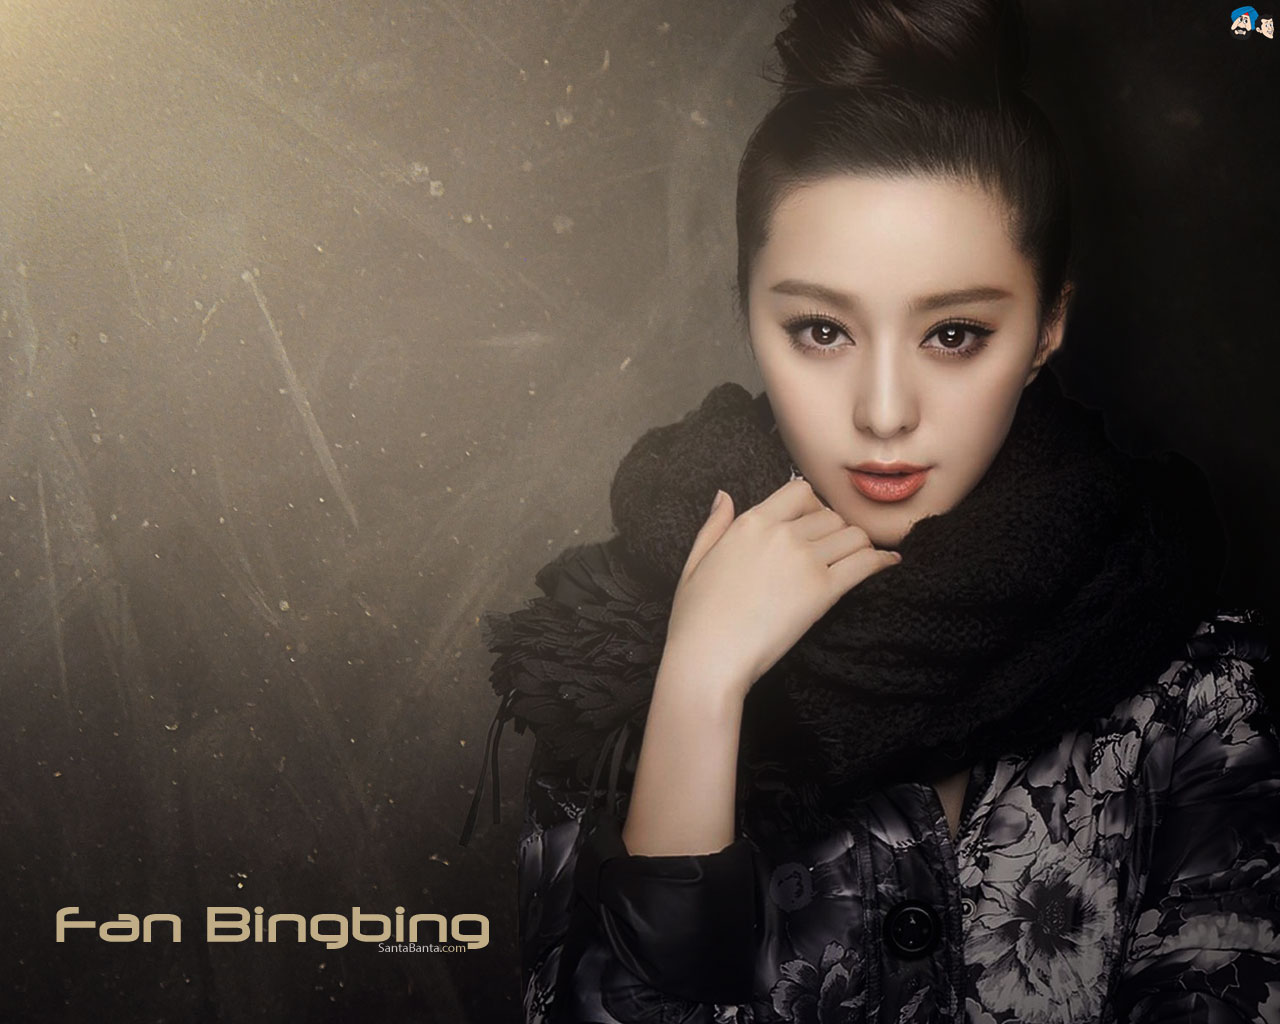 Korean Cute Desktop Wallpapers Download Fan Bingbing Wallpapers Most Beautiful Places